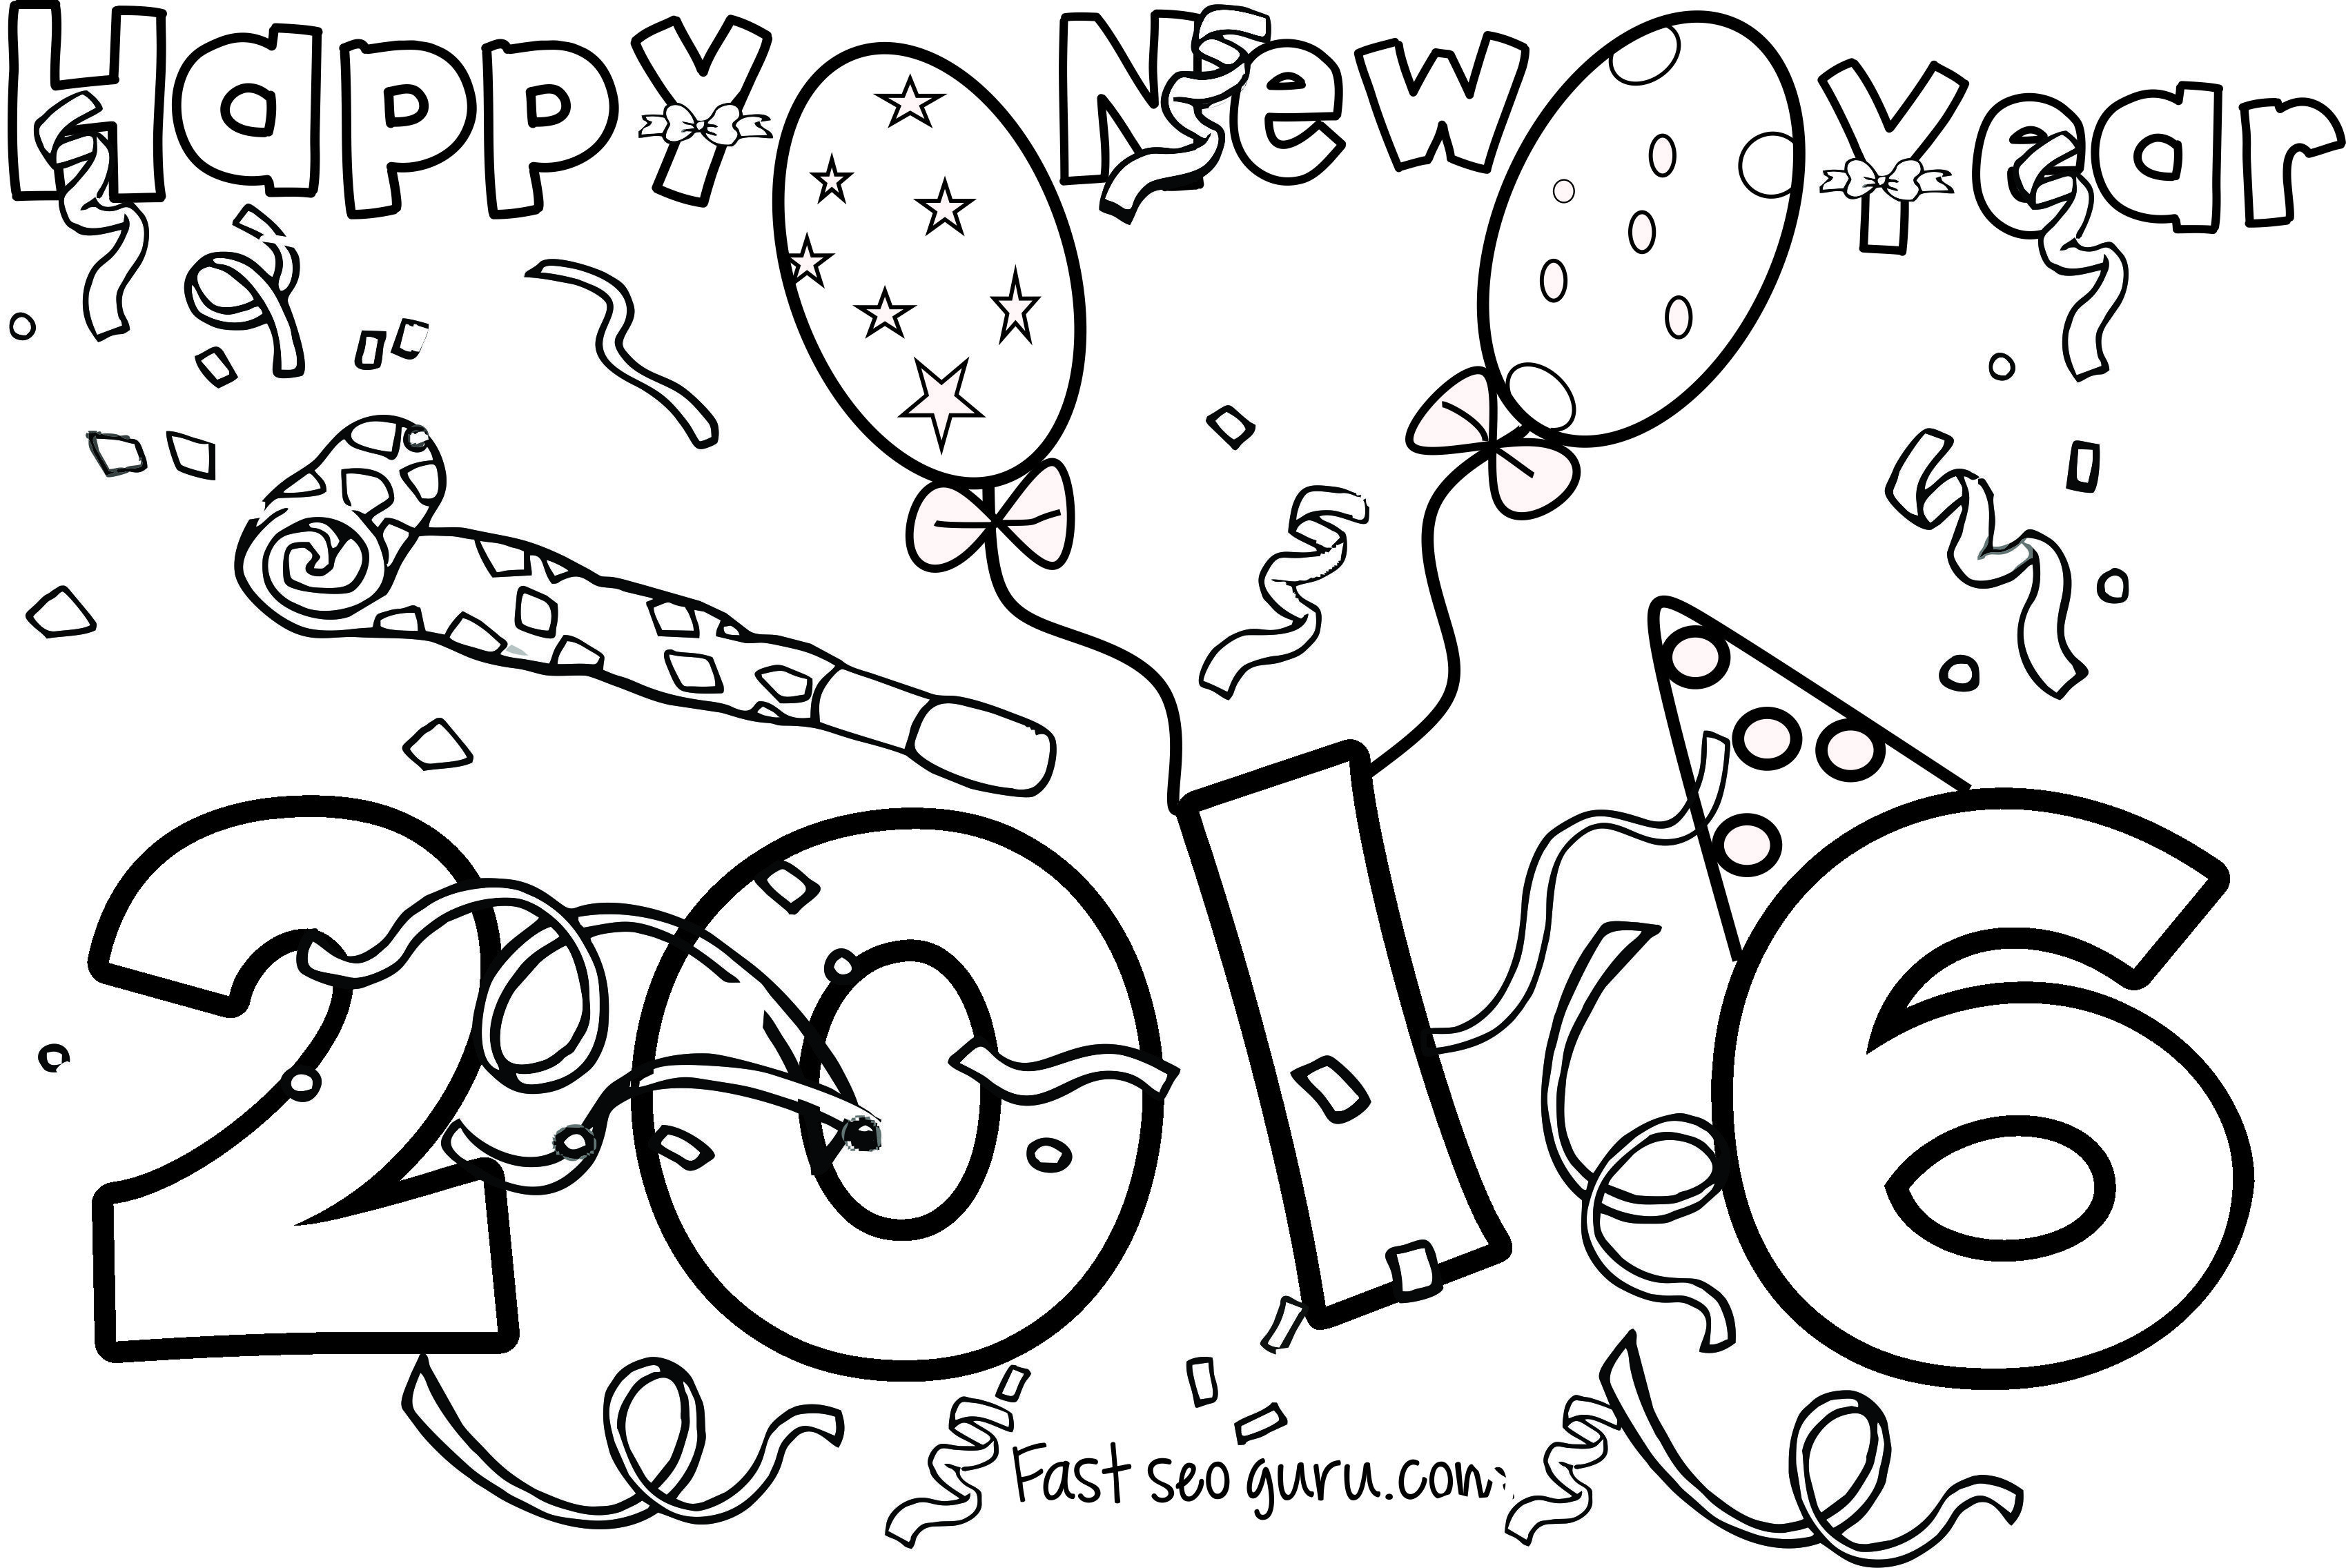 Free happy 2016 black & white clipart clipart black and white stock Free Printable 2016 Happy New Year Clipart & Clip Art Images #11285 ... clipart black and white stock